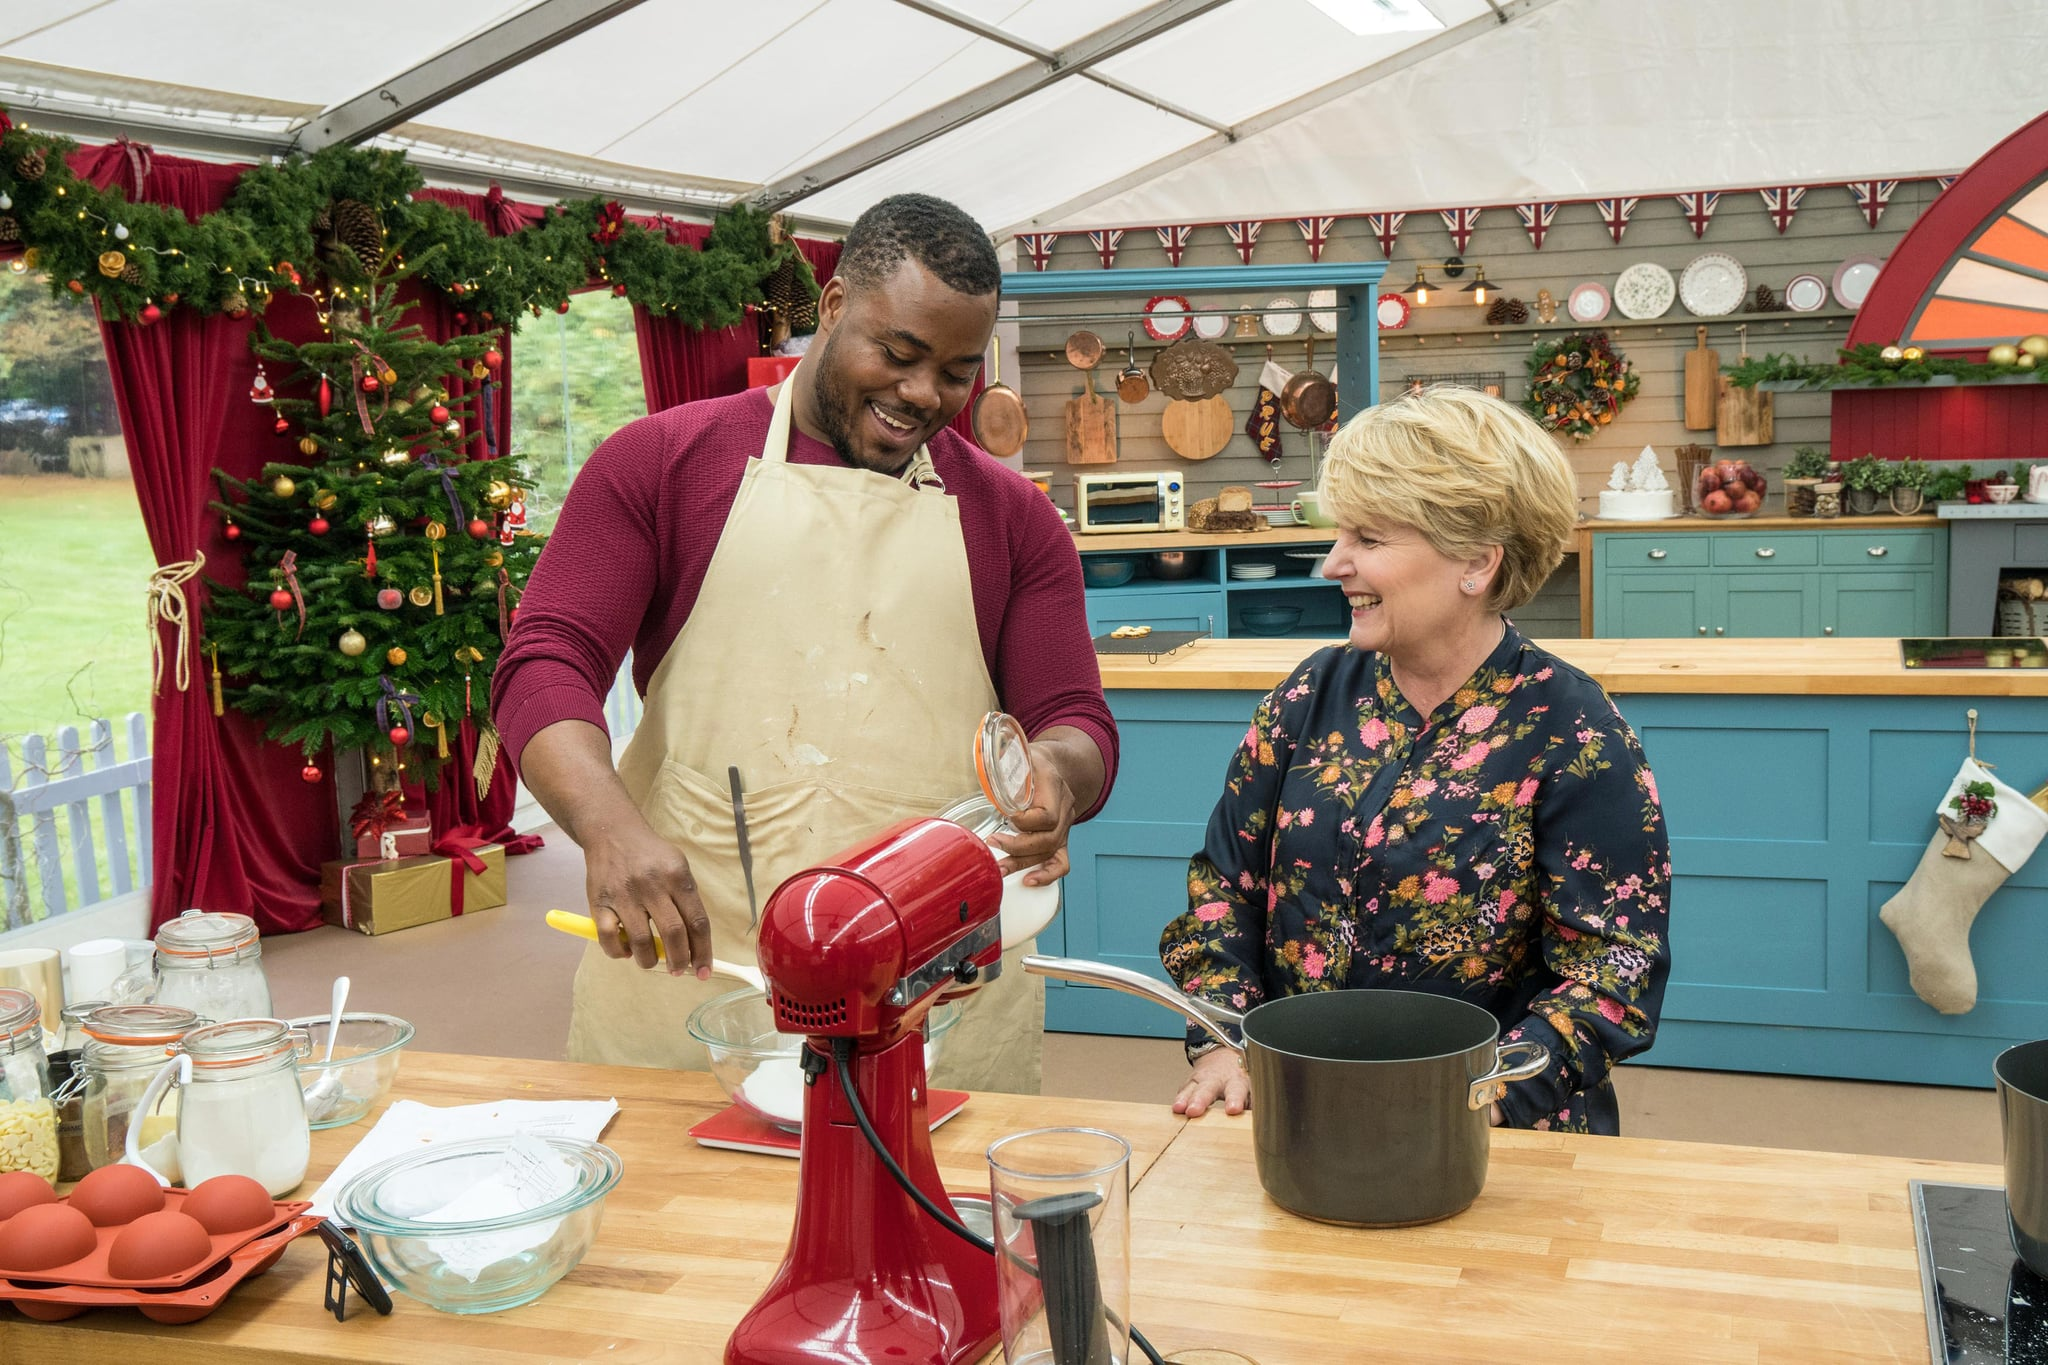 THE GREAT CHRISTMAS BAKE OFF, Baker Selasi Gbormittah, presenter Sandi Toksvig, aired December 25-26, 2017, ph: Mark Bourdillon / Charlotte Medl / Channel 4 / courtesy Everett Collection